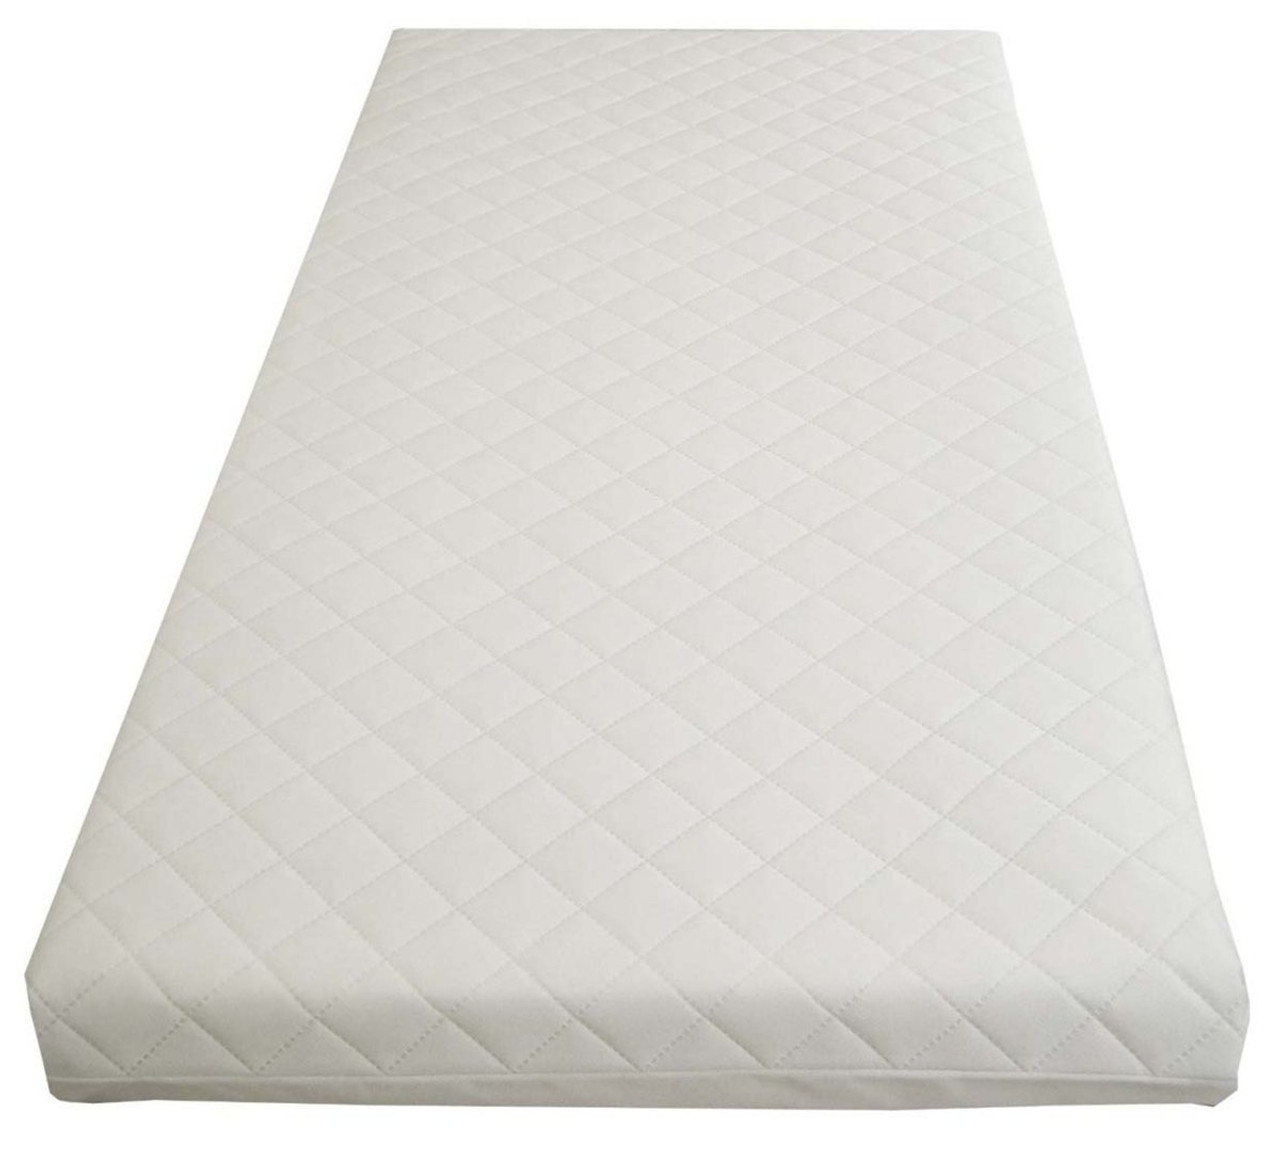 COT BED SPRING MATTRESS WITH BREATHABLE FOAM COT BED MATTRESS 2 SIZES AVAILABLE